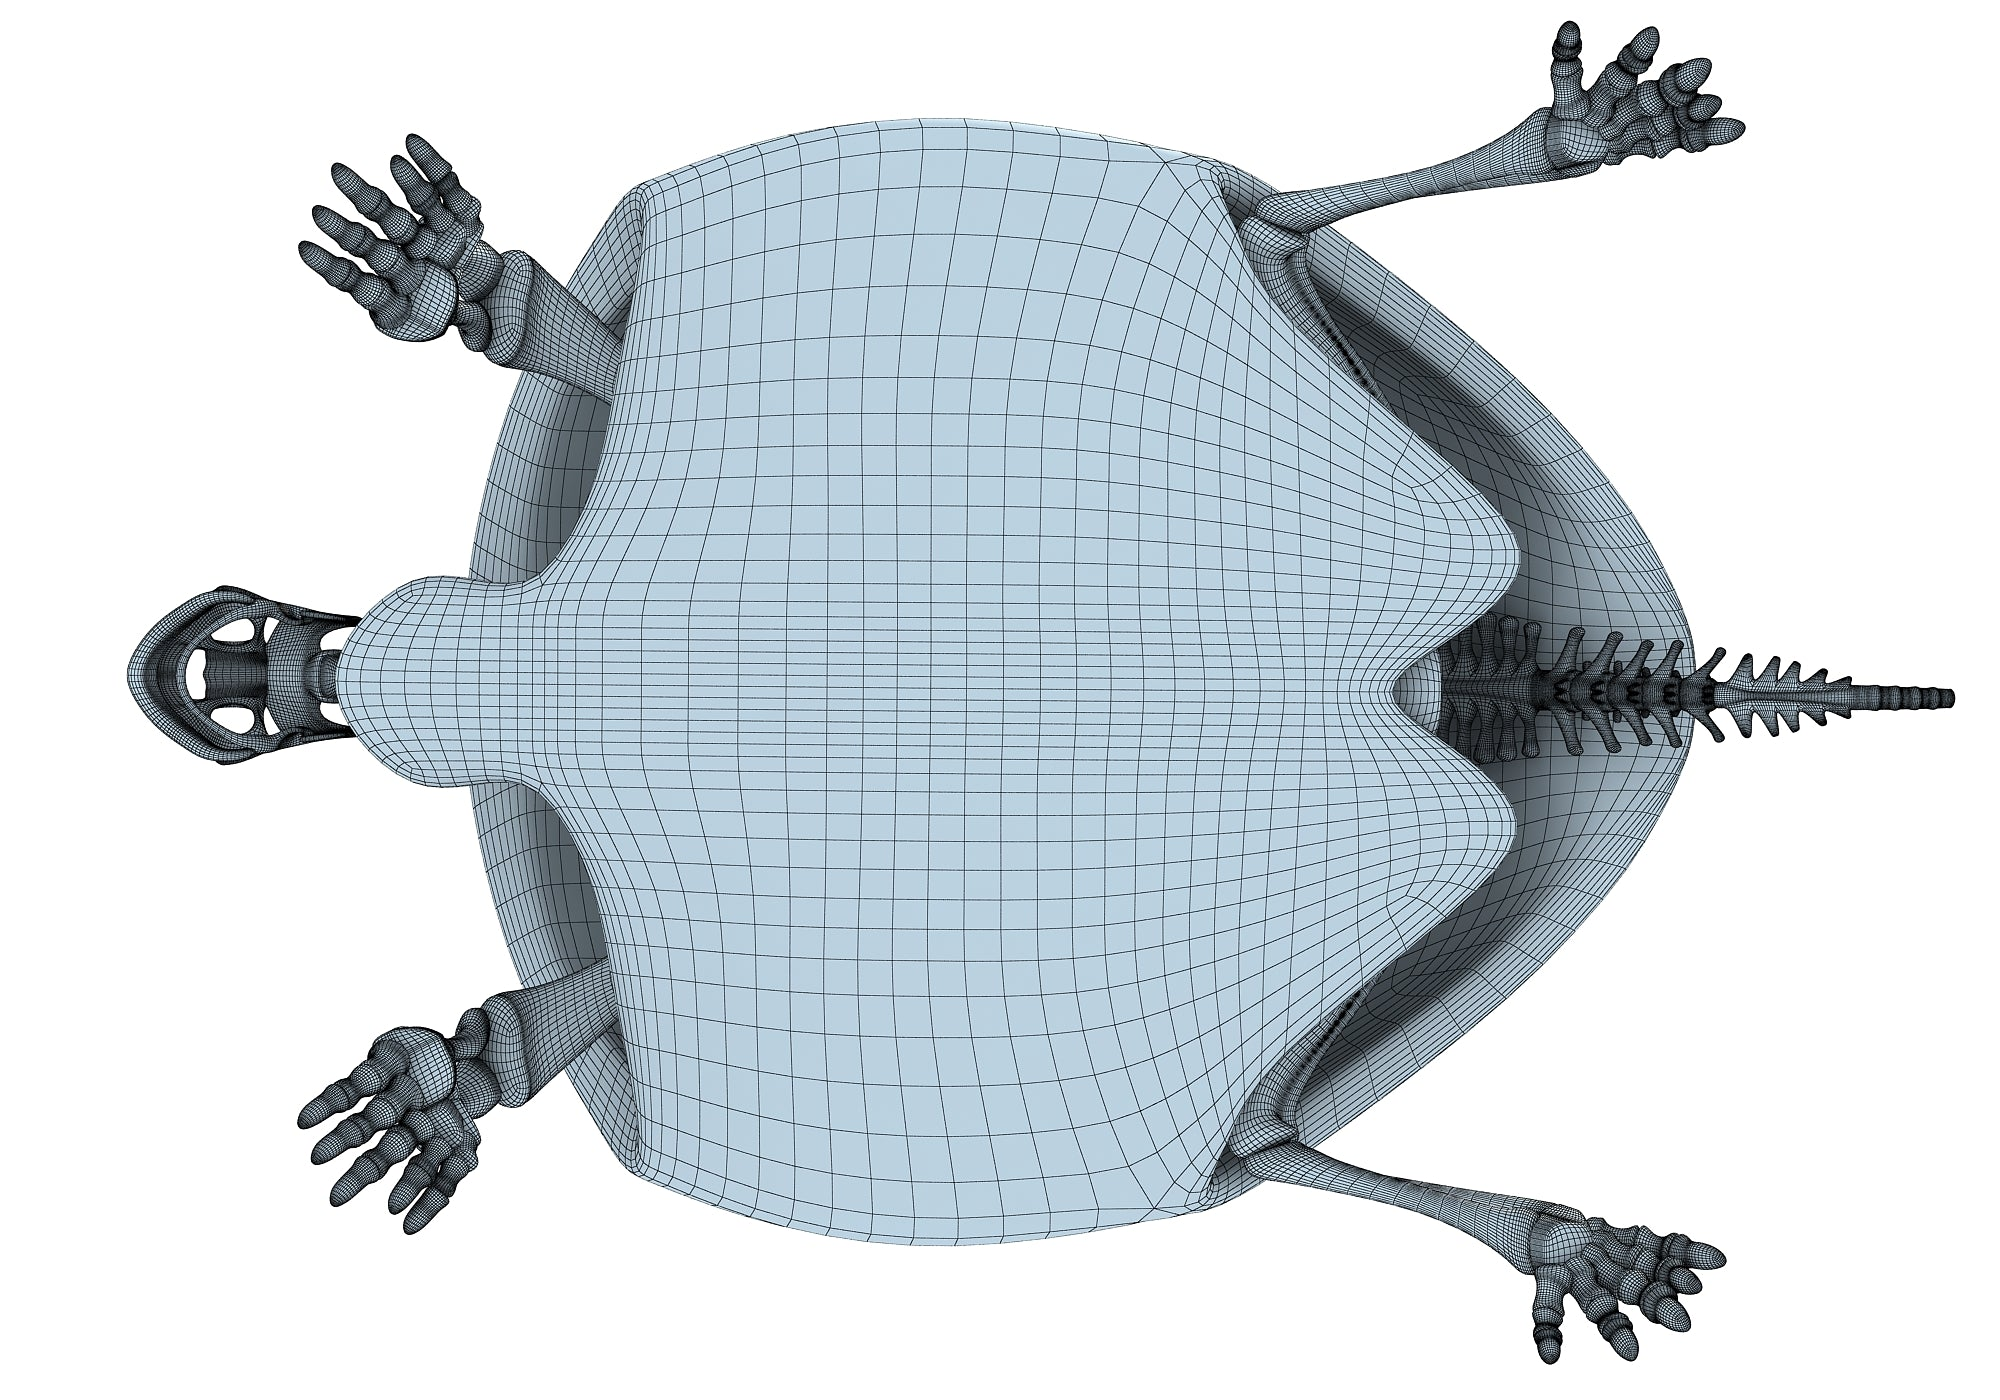 Turtle Skeleton 3D Model